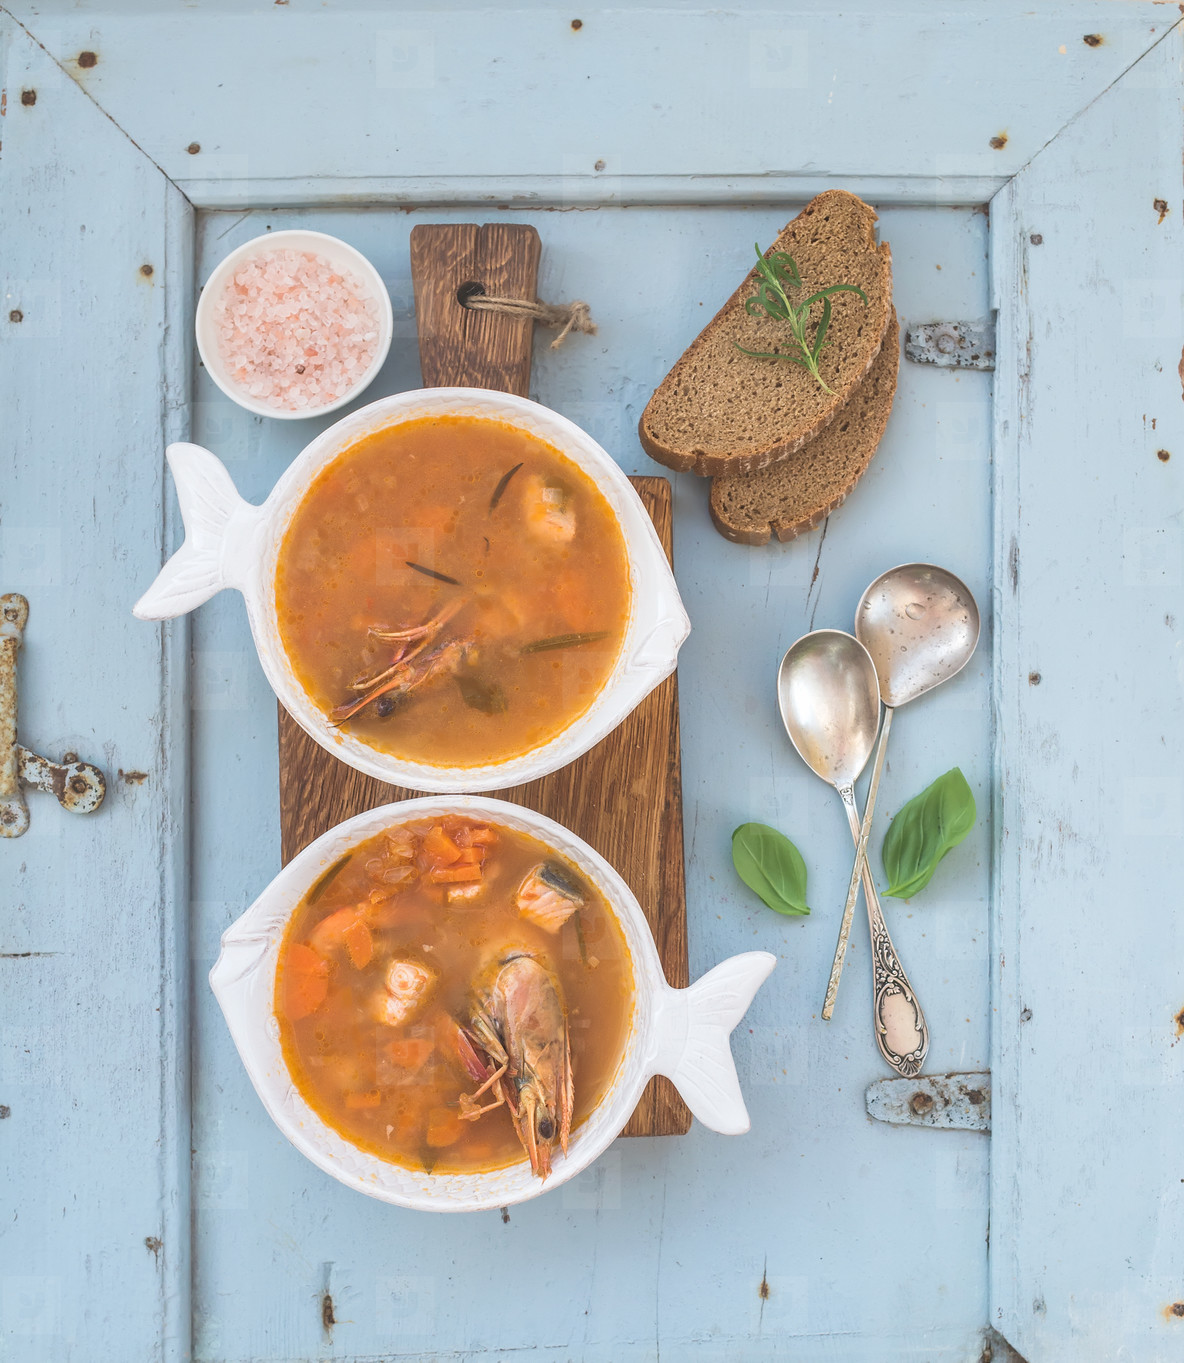 French Bouillabaisse fish tomato soup with salmon fillet  shrimp and spices on rustic wooden board over light blue background